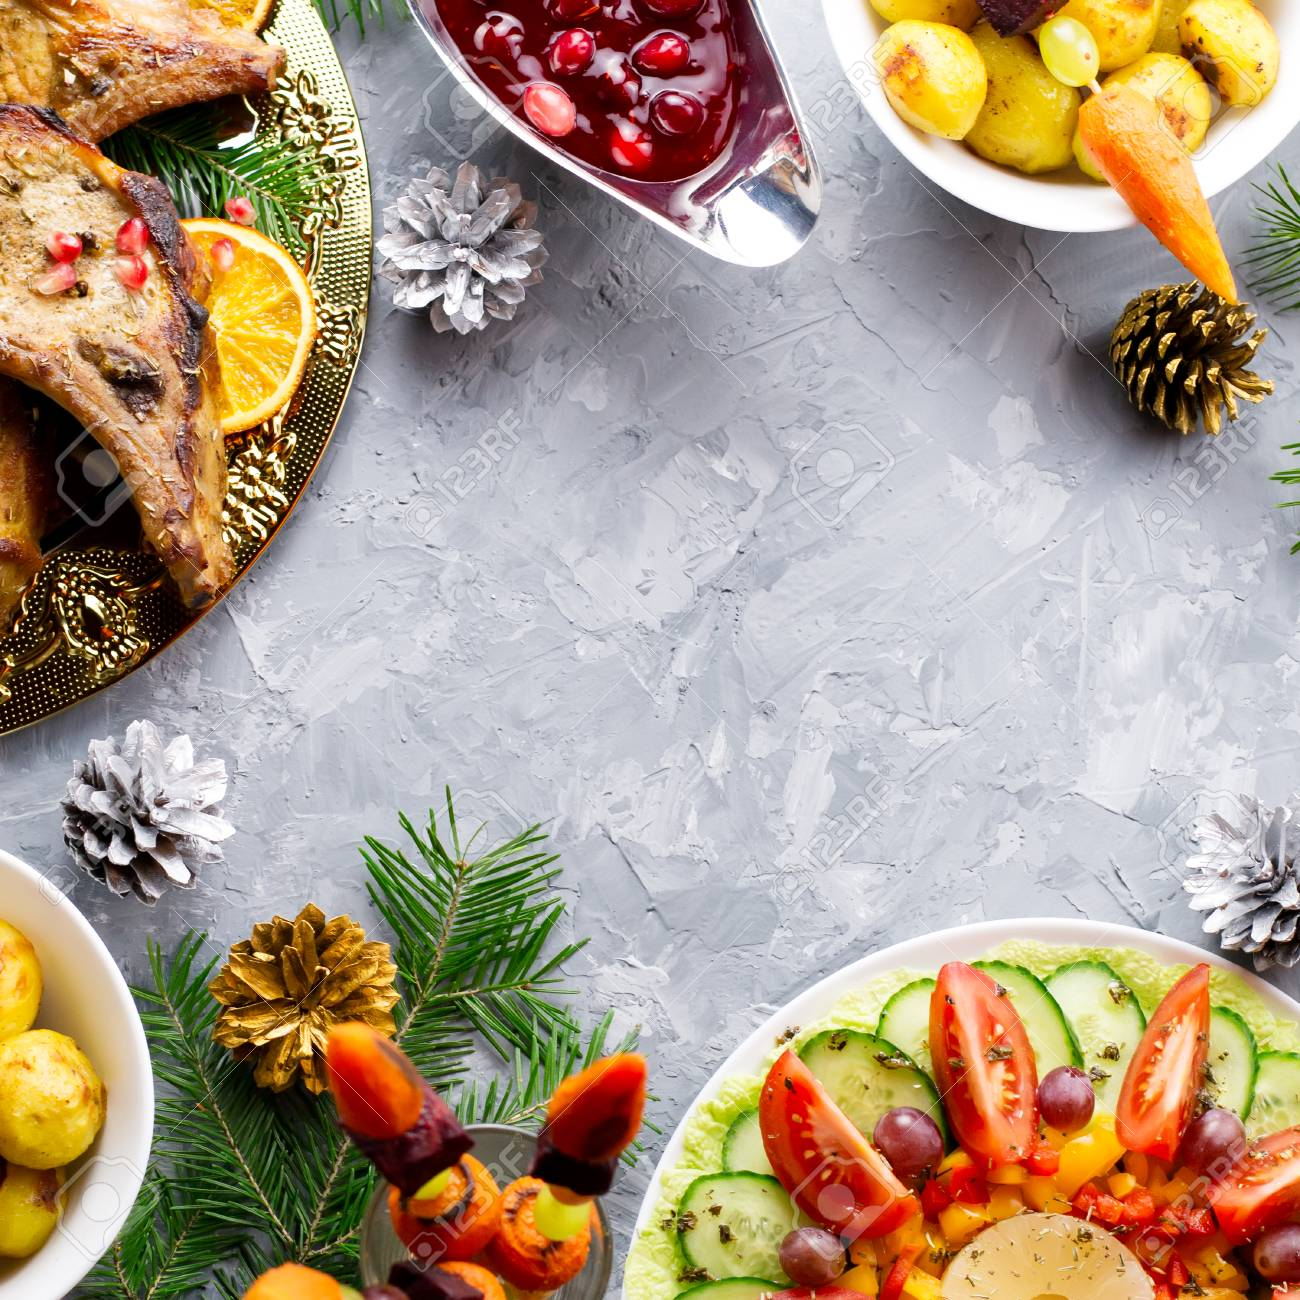 Delicious Christmas Meal With Roasted Meat Steak Christmas Wreath